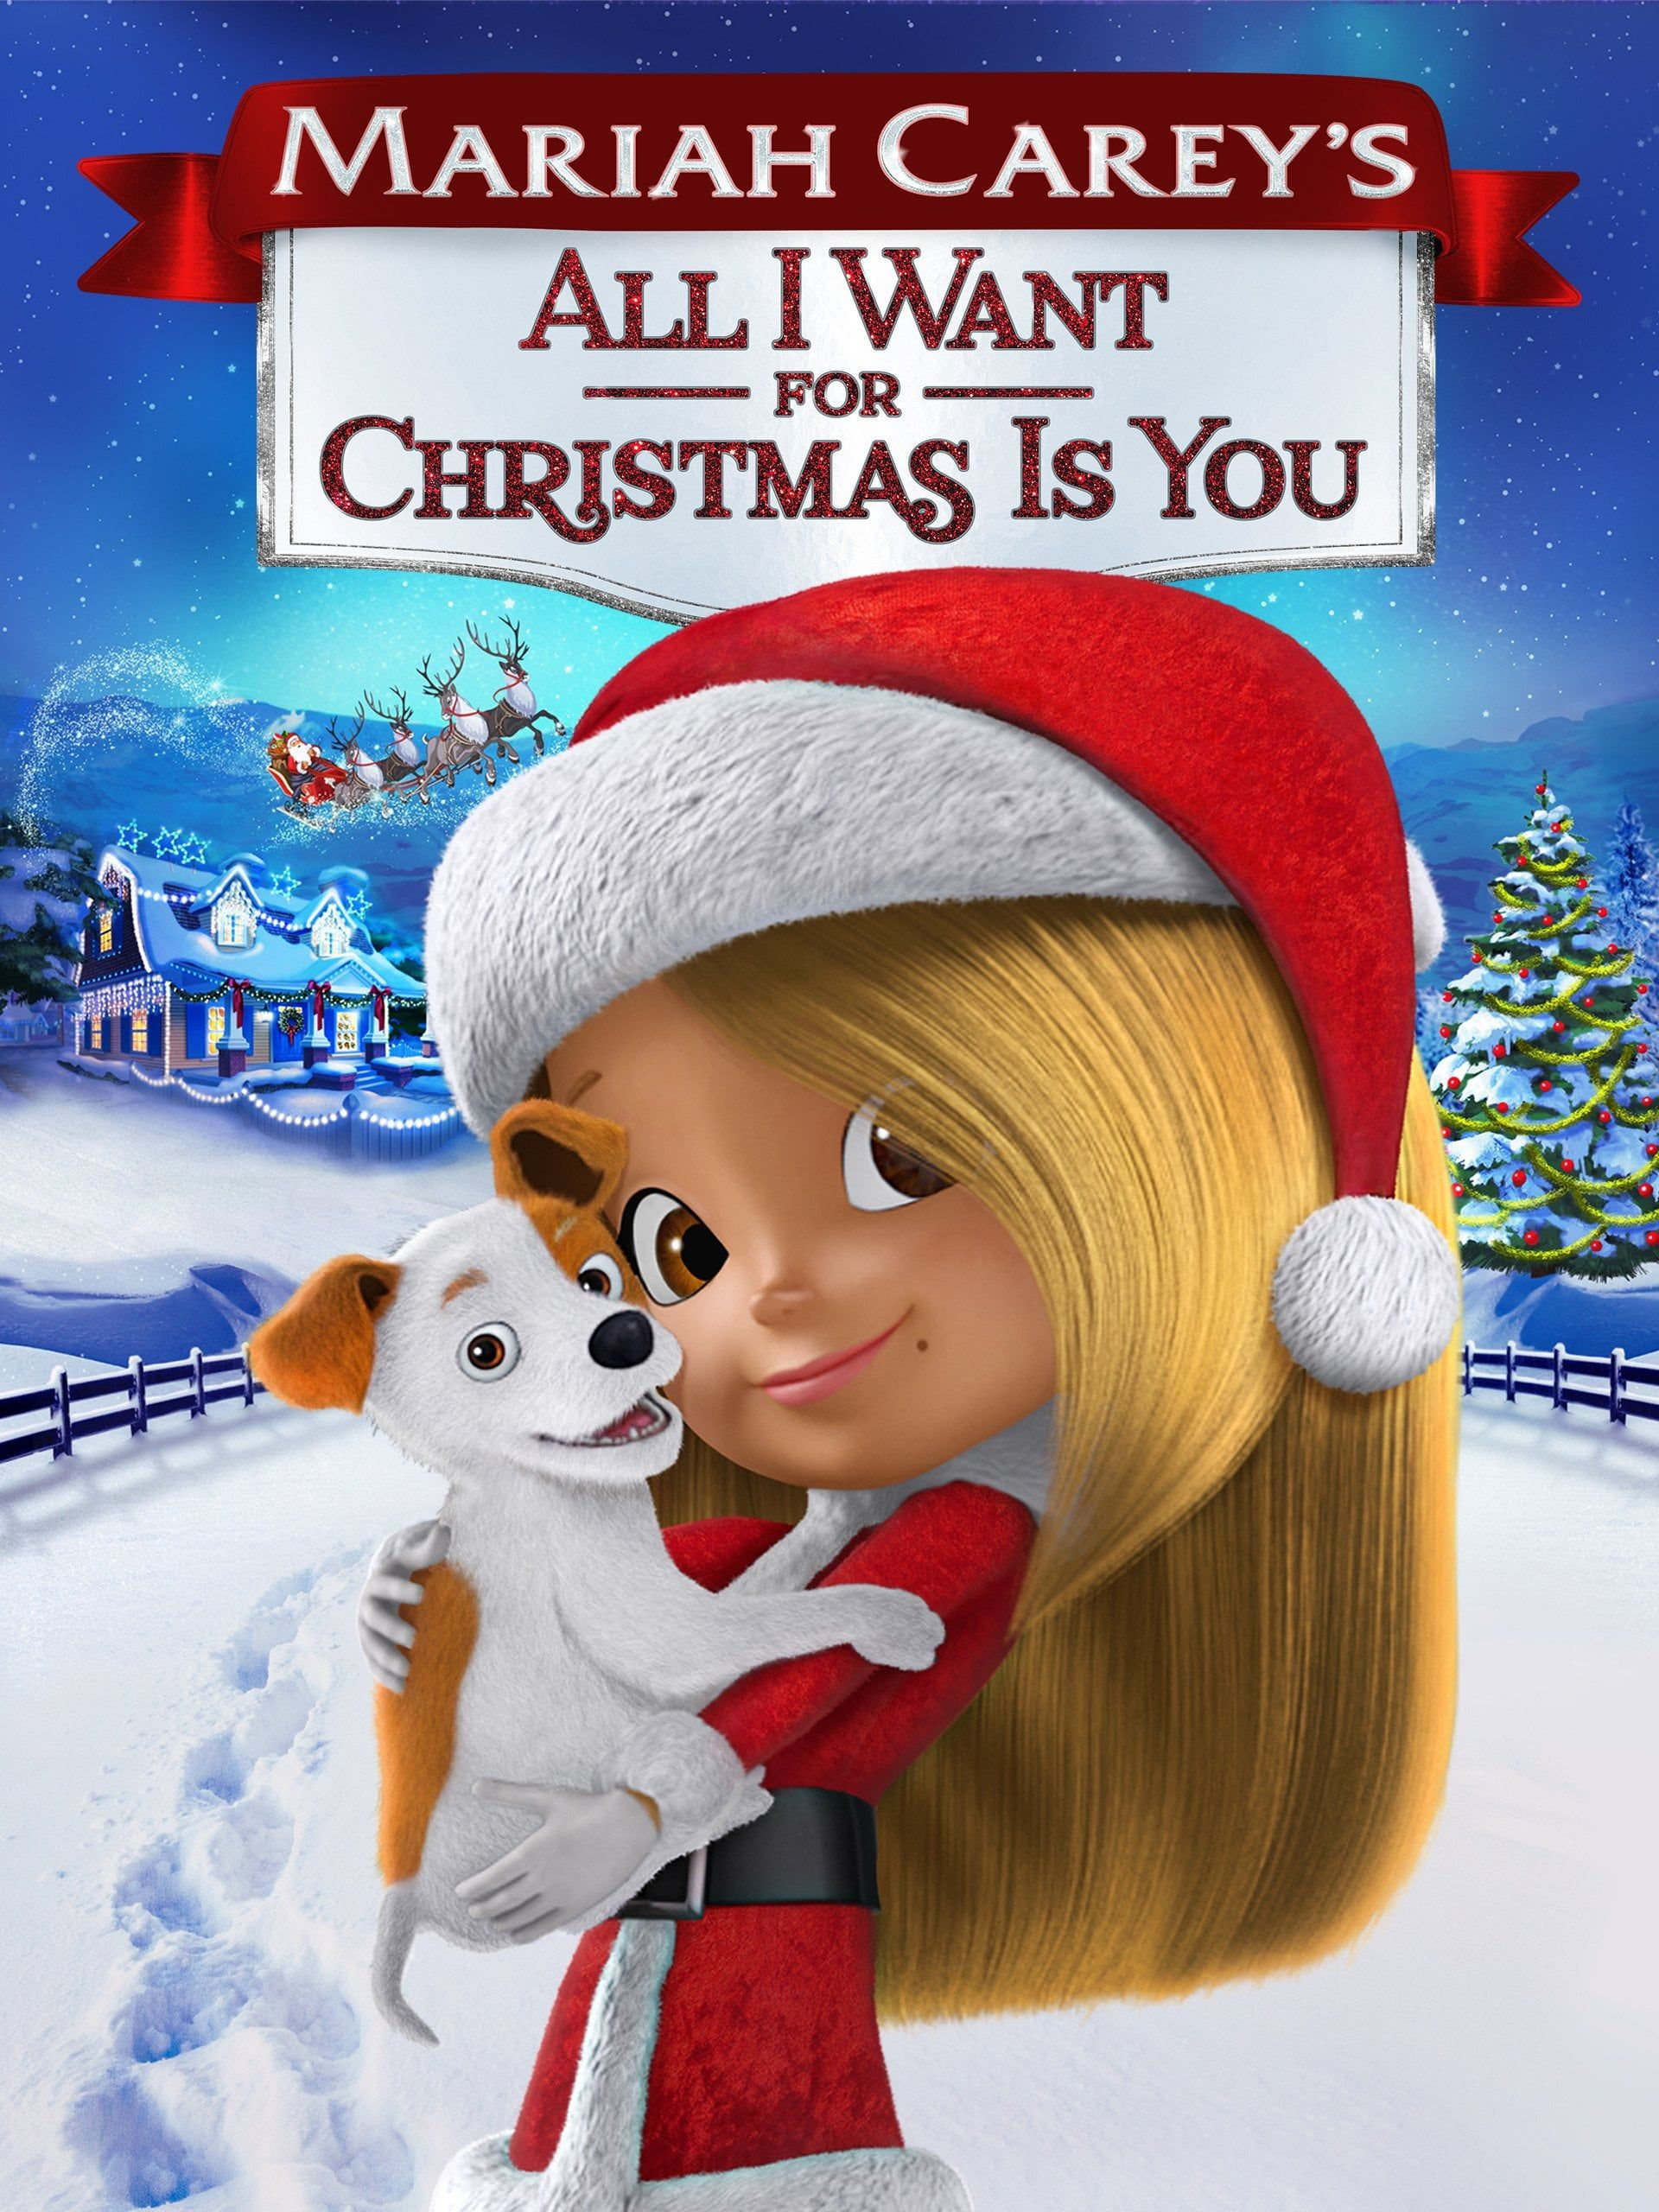 27 Christmas Movies On Amazon Prime That Will Make Your Holidays Merry And Bright Mariah Carey Christmas Movies Mariah